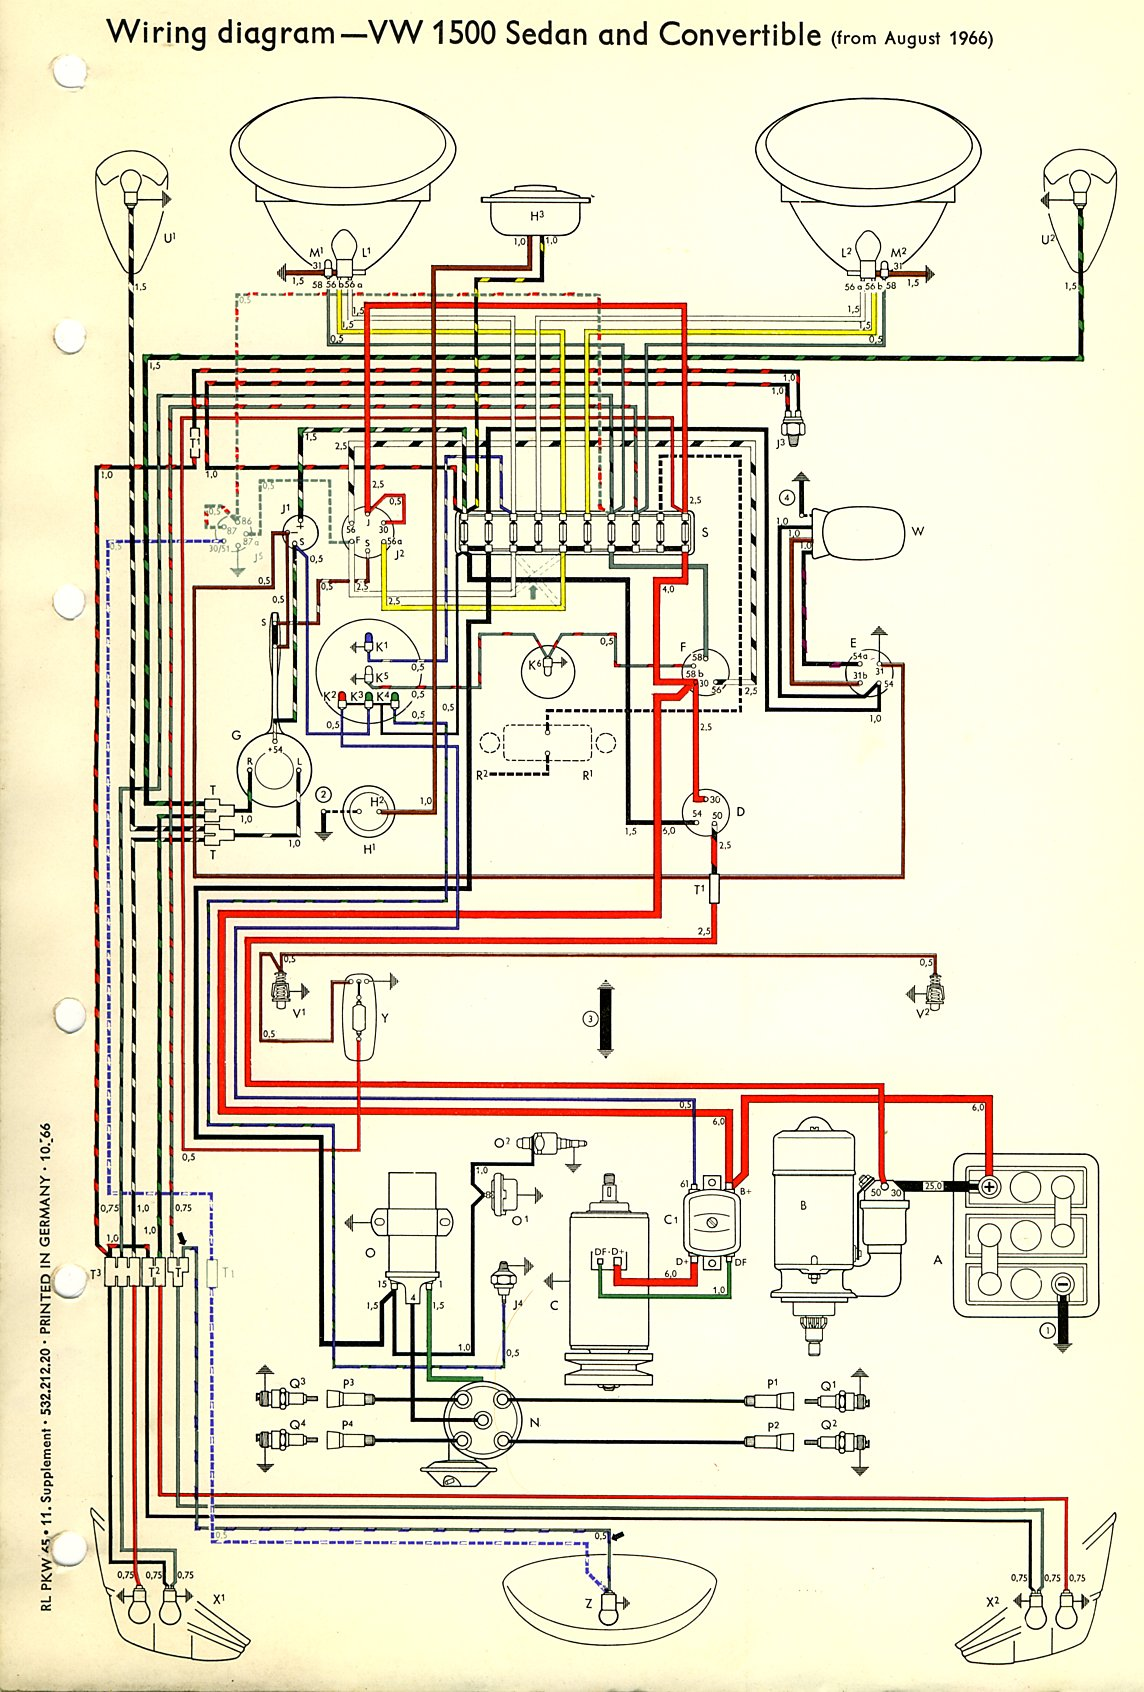 1980 Corvette Horn Diagram Schematics Wiring Diagrams 1994 1974 Chevrolet 1956 94